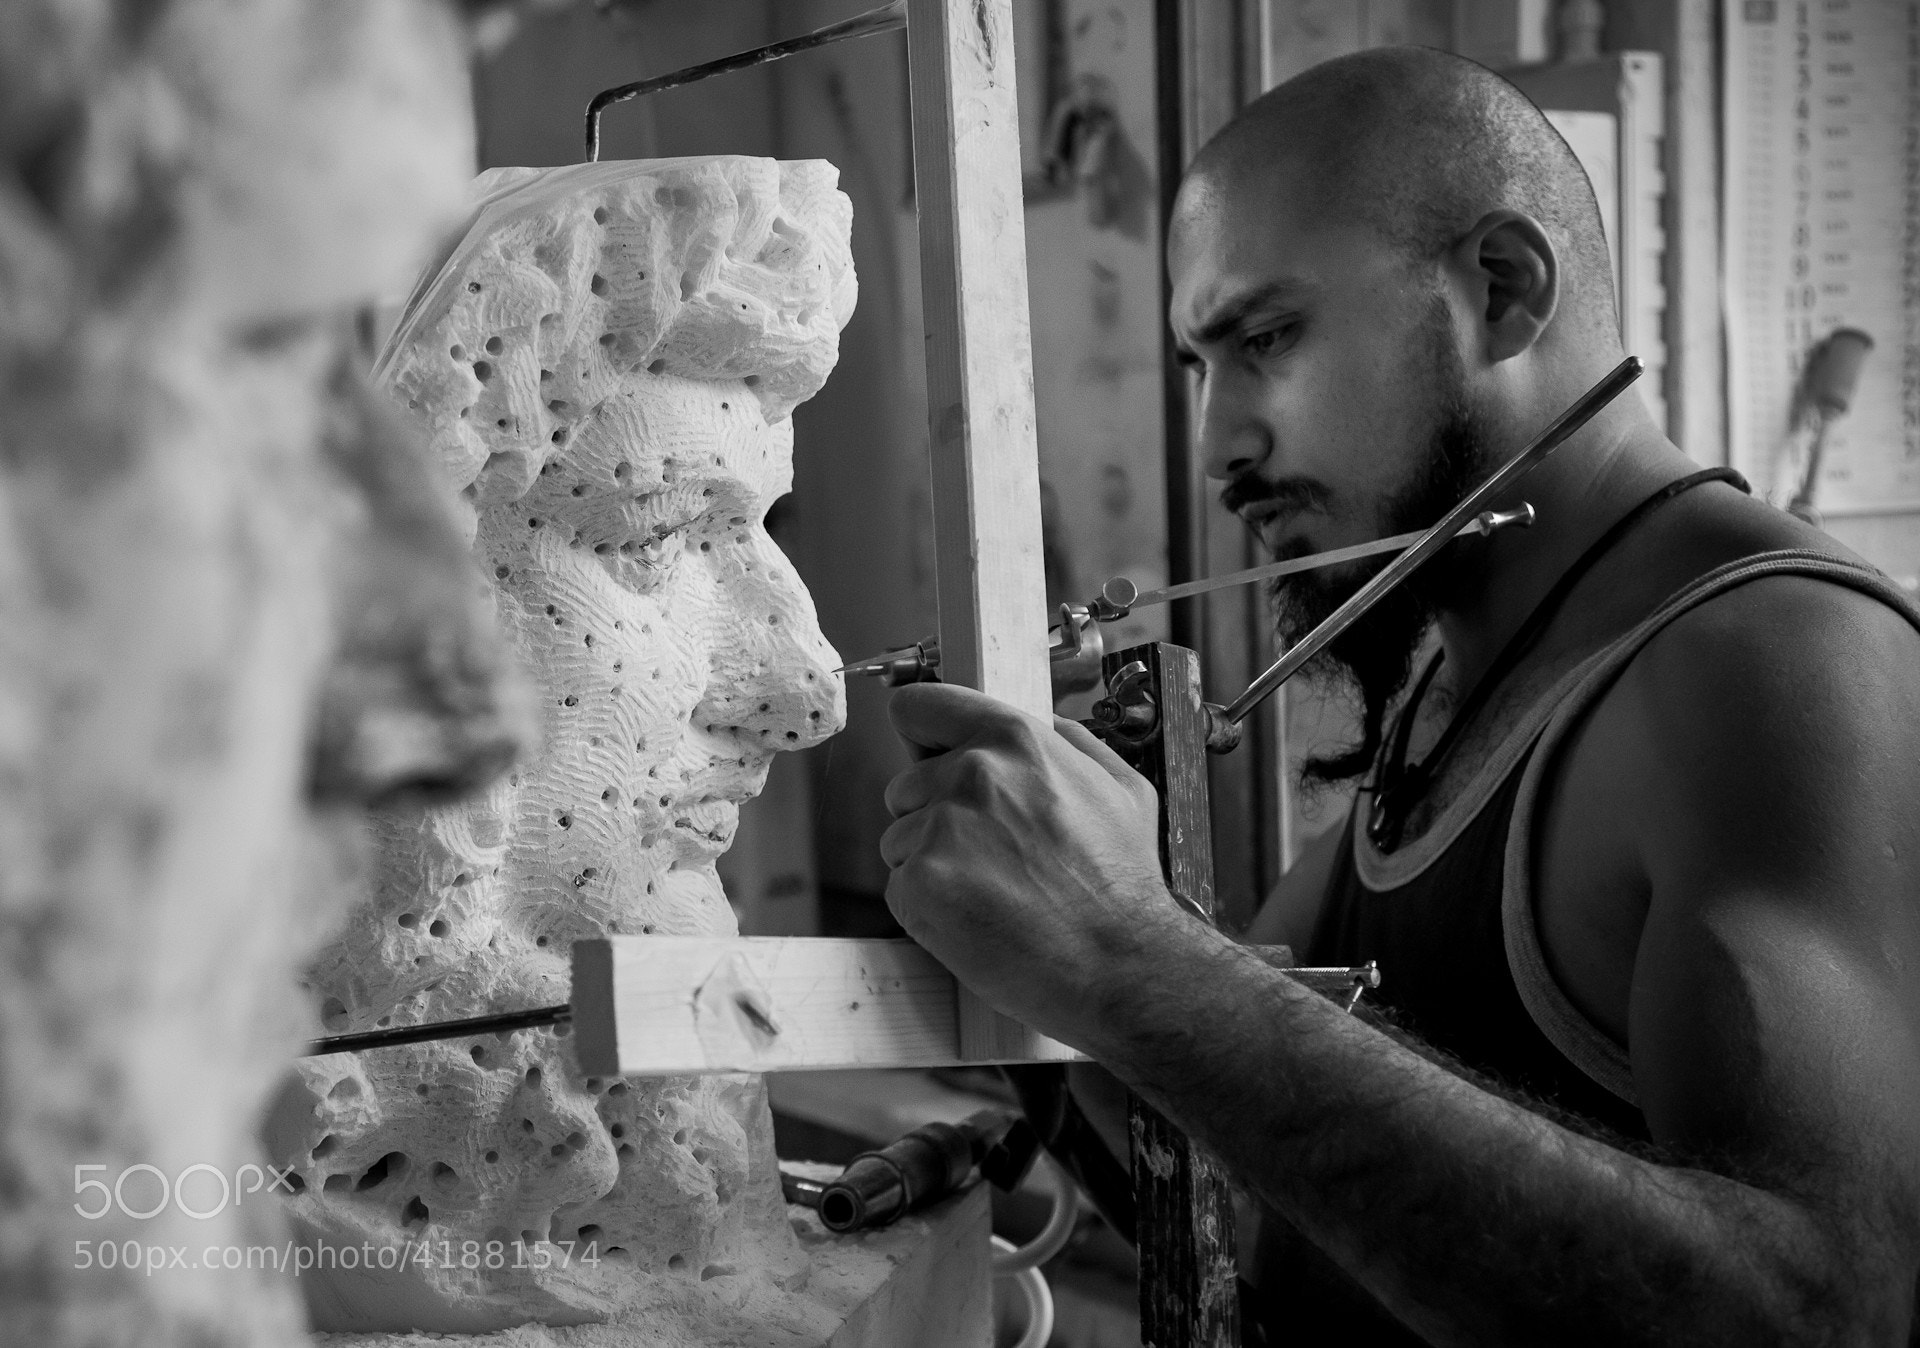 Photograph The sculptor by Marton Apai on 500px